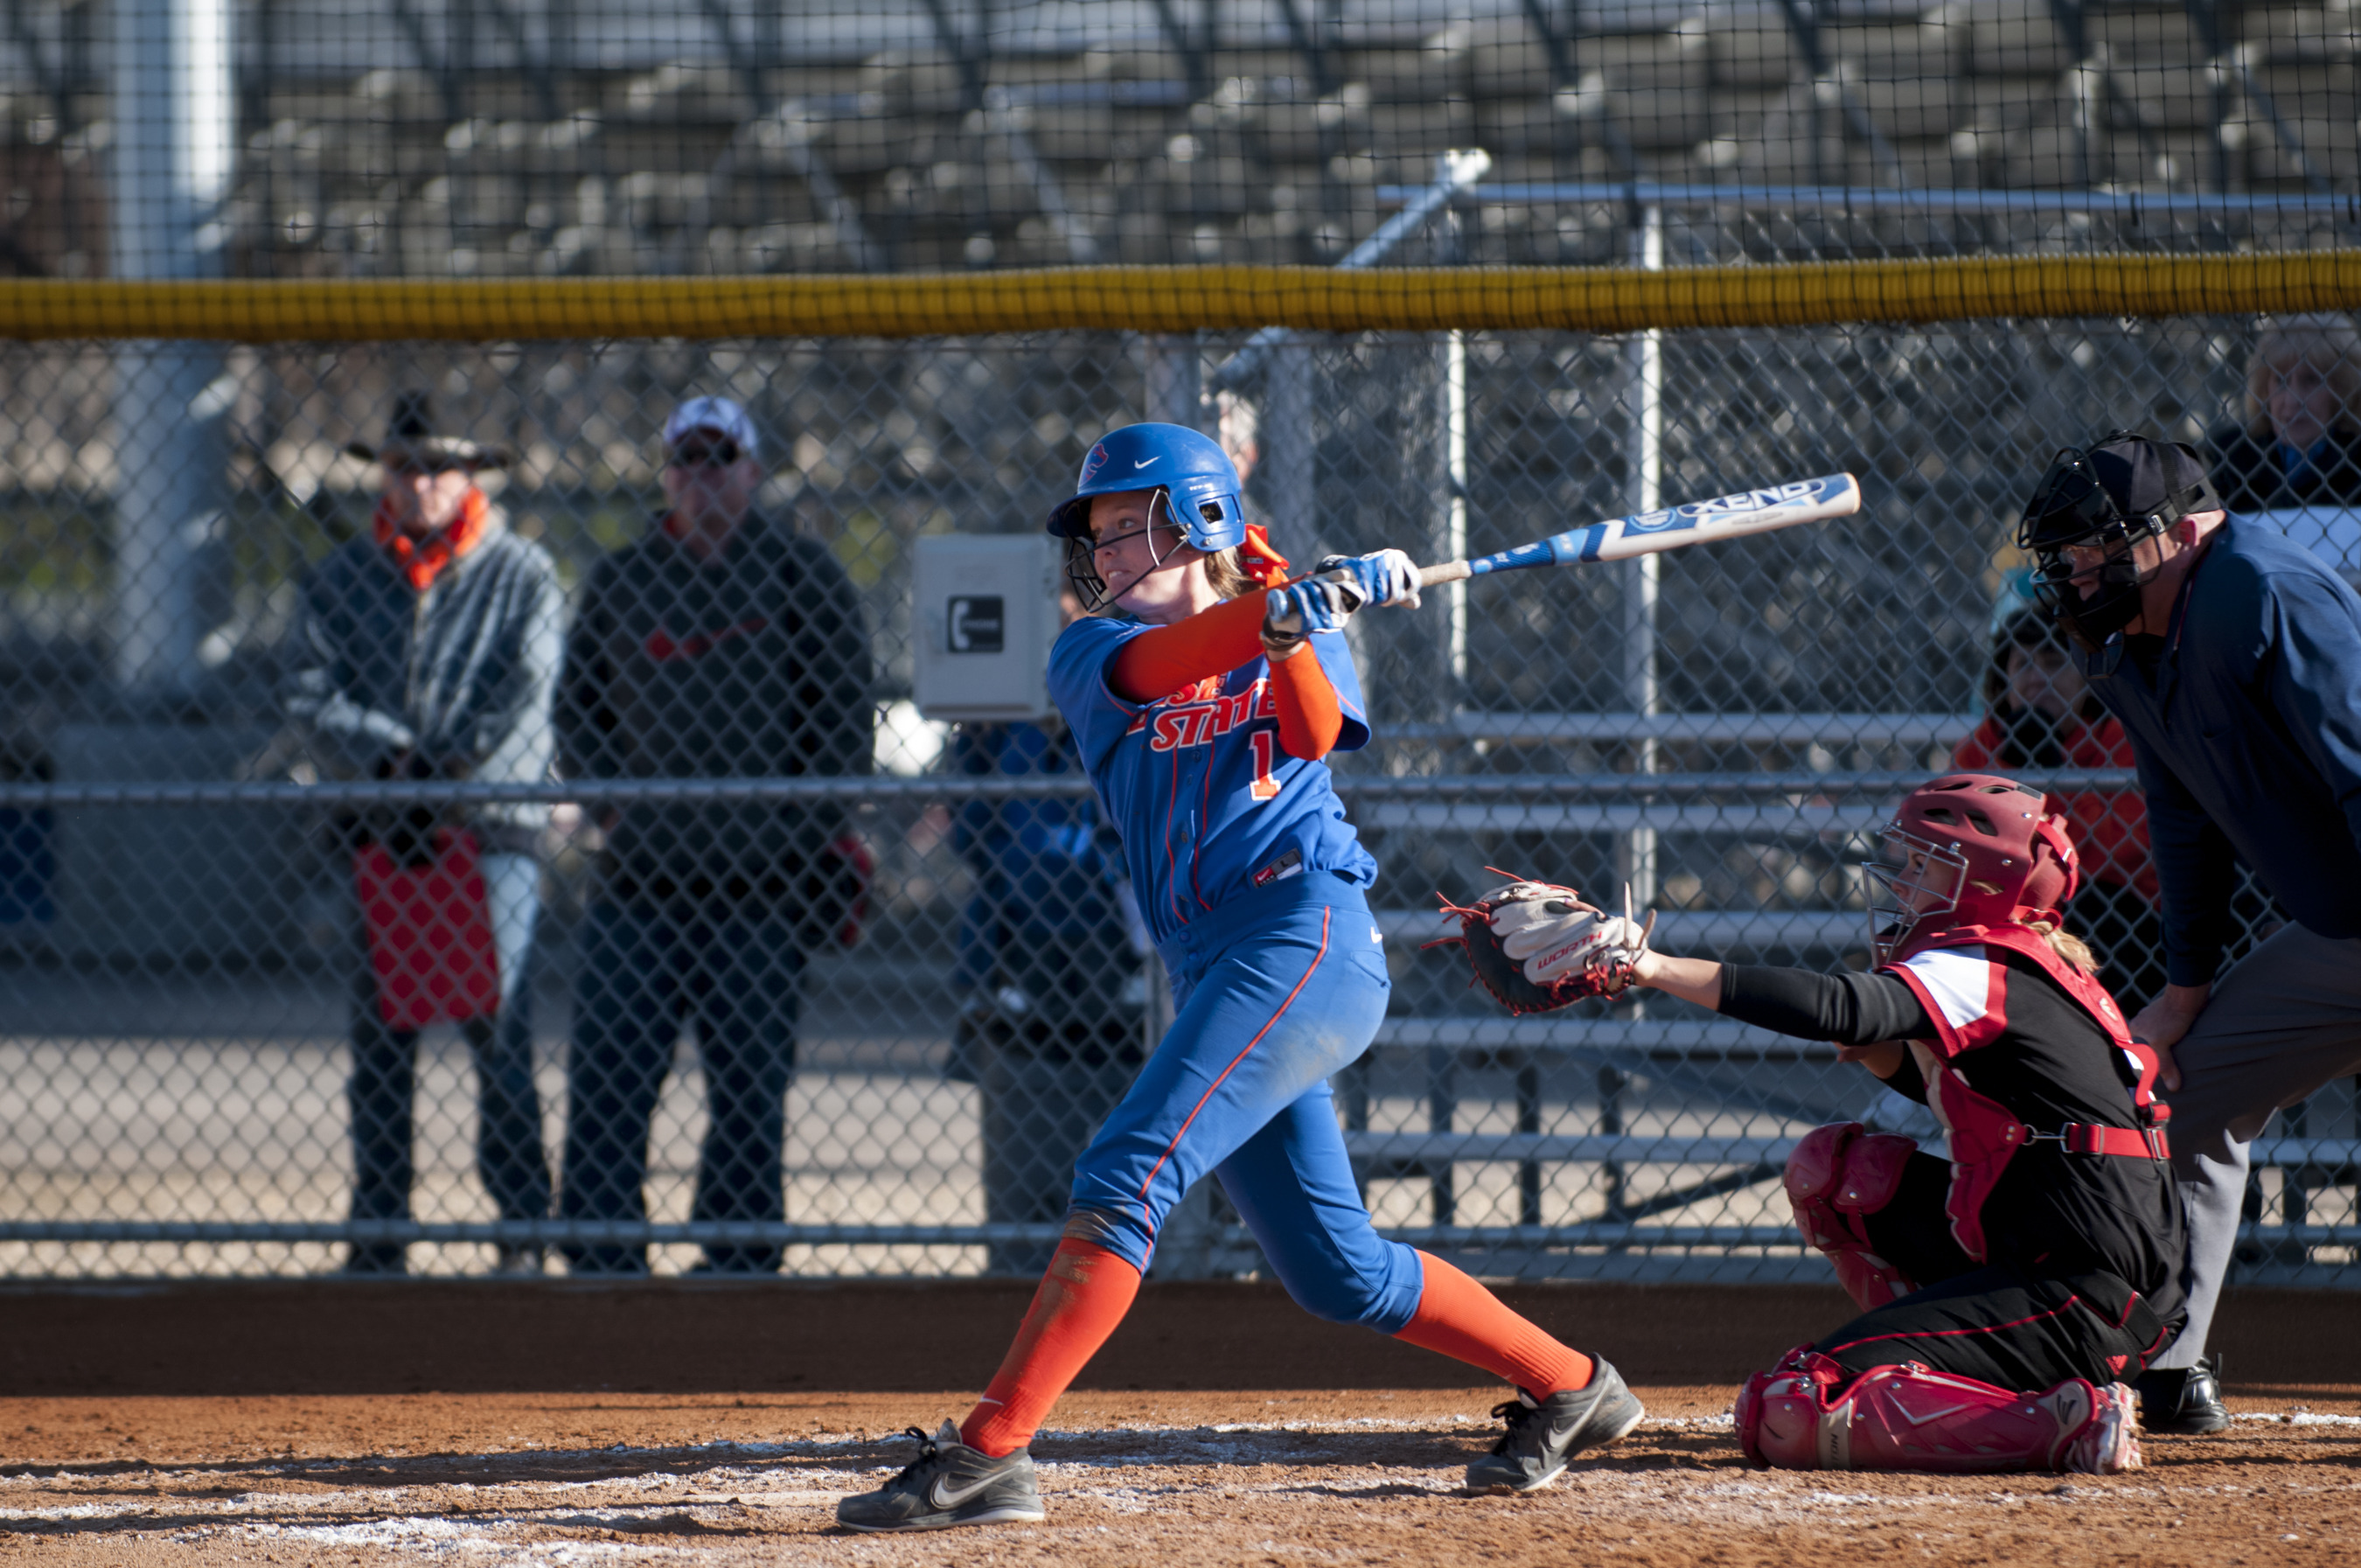 Ashley Palmer tied the school record with a 4-for-4 day at the plate